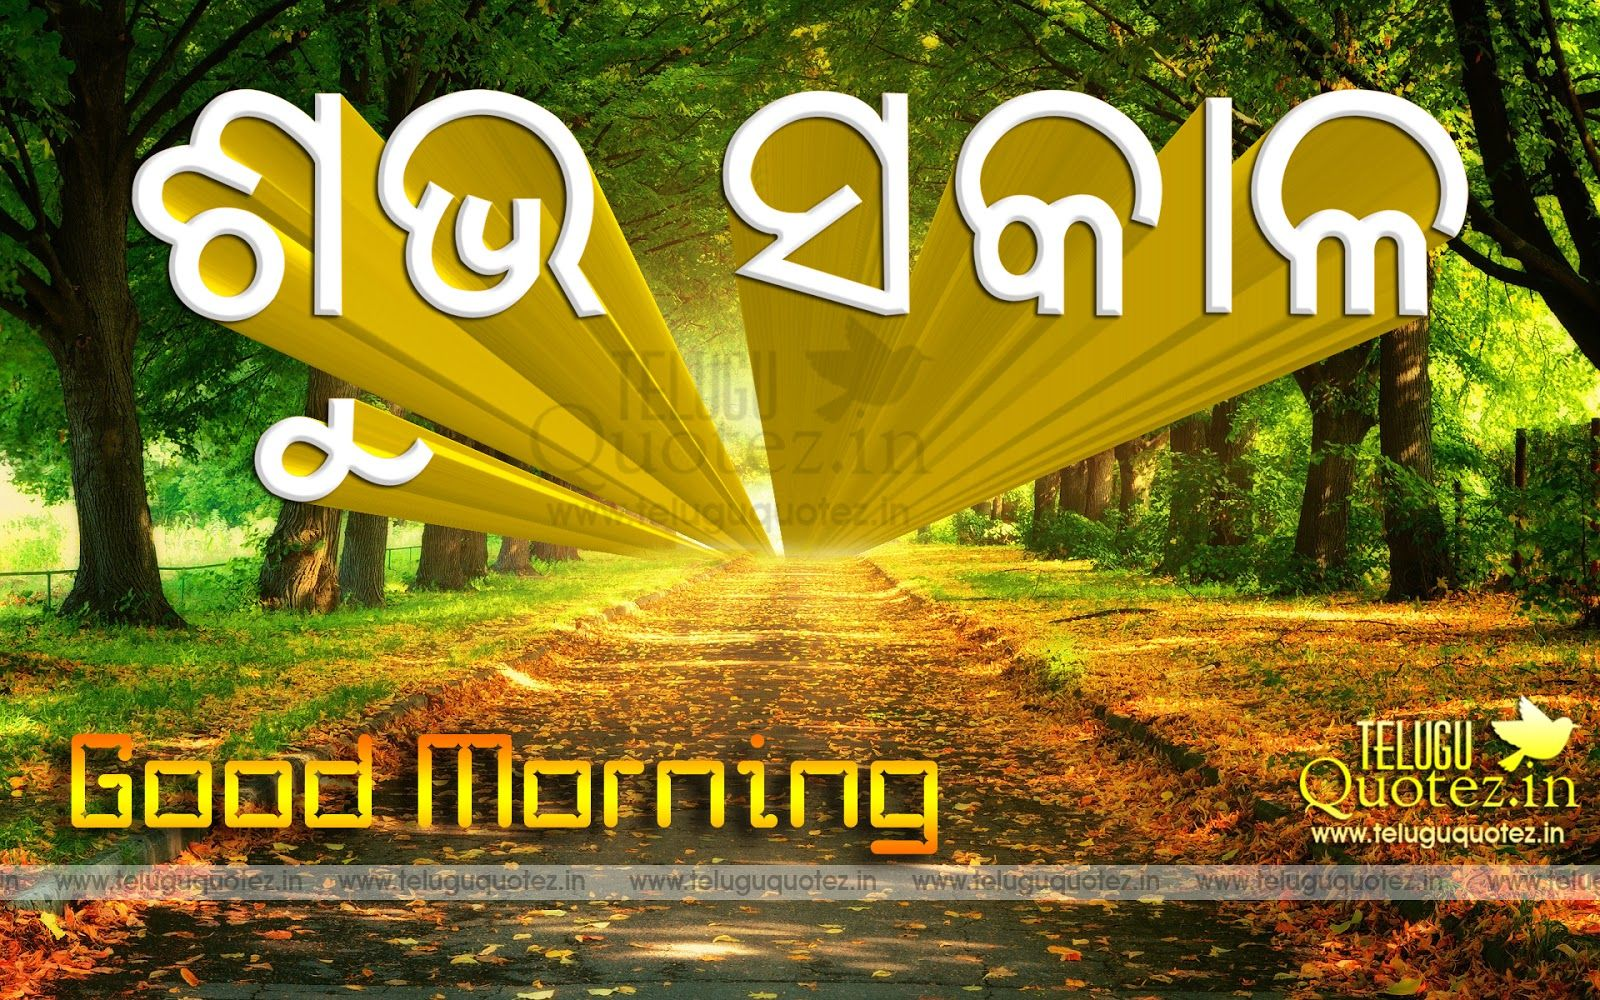 Good Morning Quotes And Sayings In Oriya Language Teluguquotezin